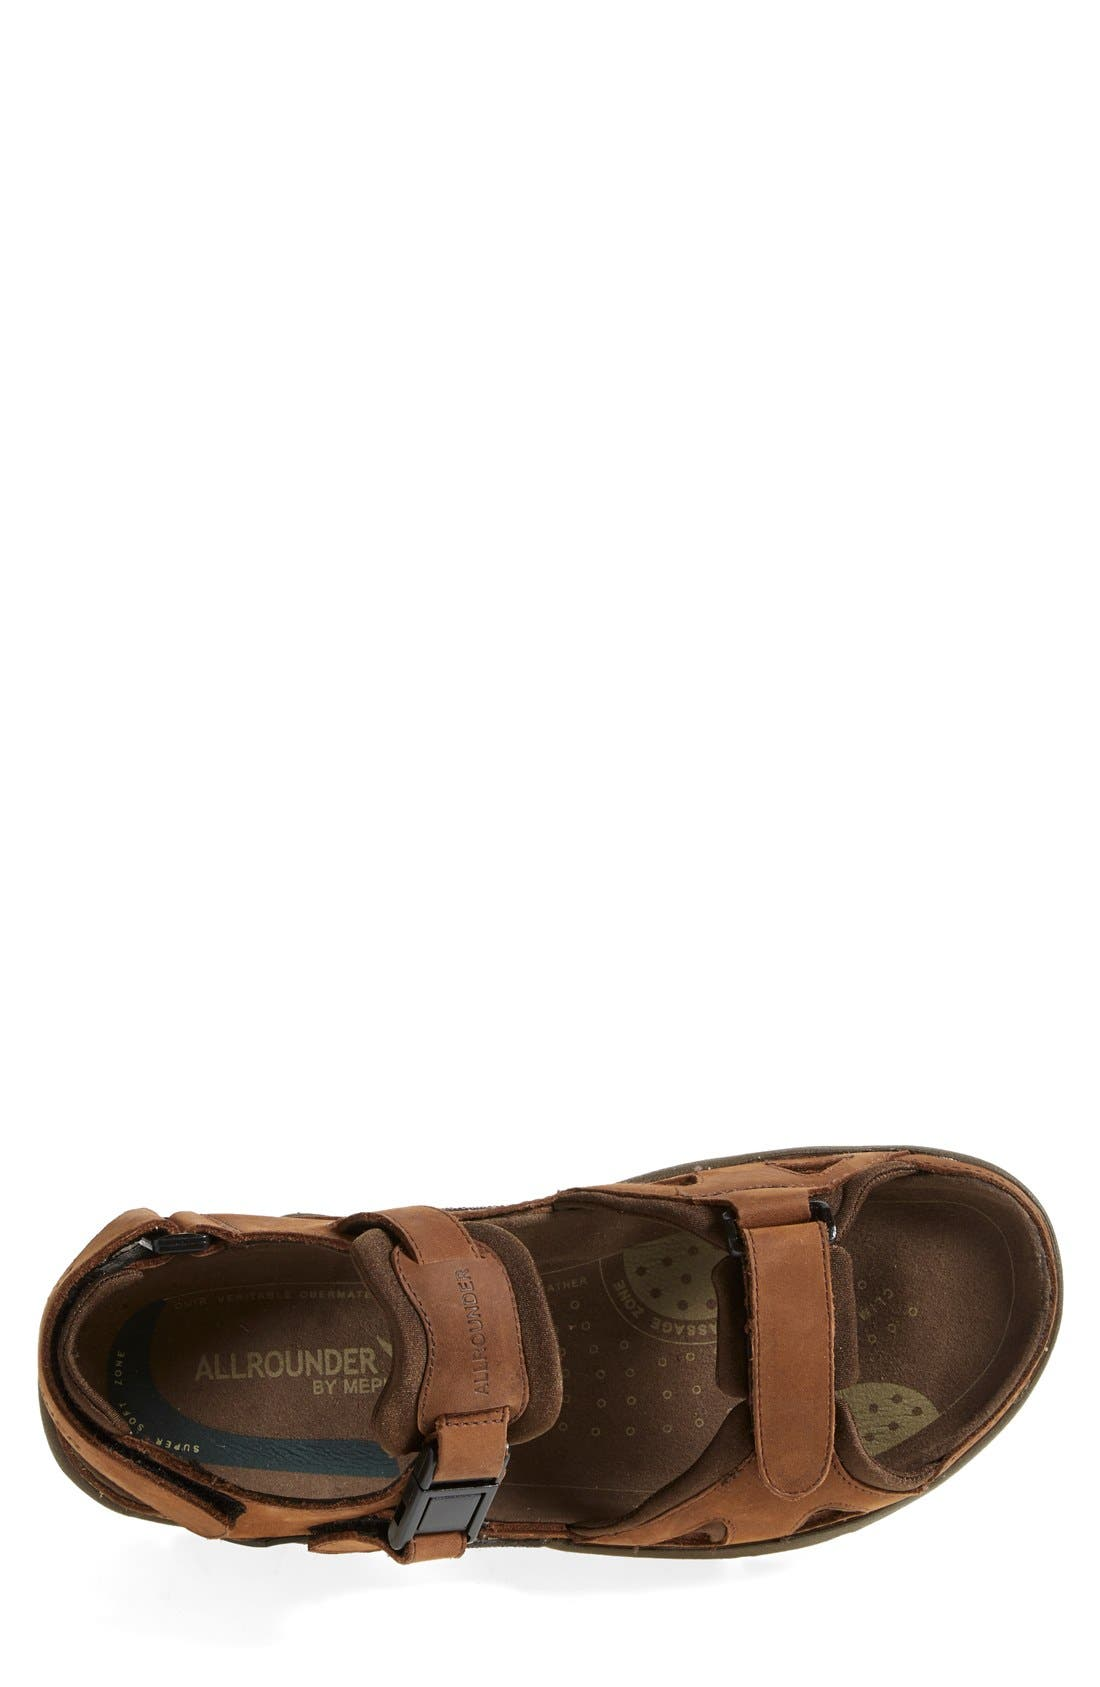 Allrounder by Mephisto 'Alligator' Sandal,                             Alternate thumbnail 3, color,                             Brown